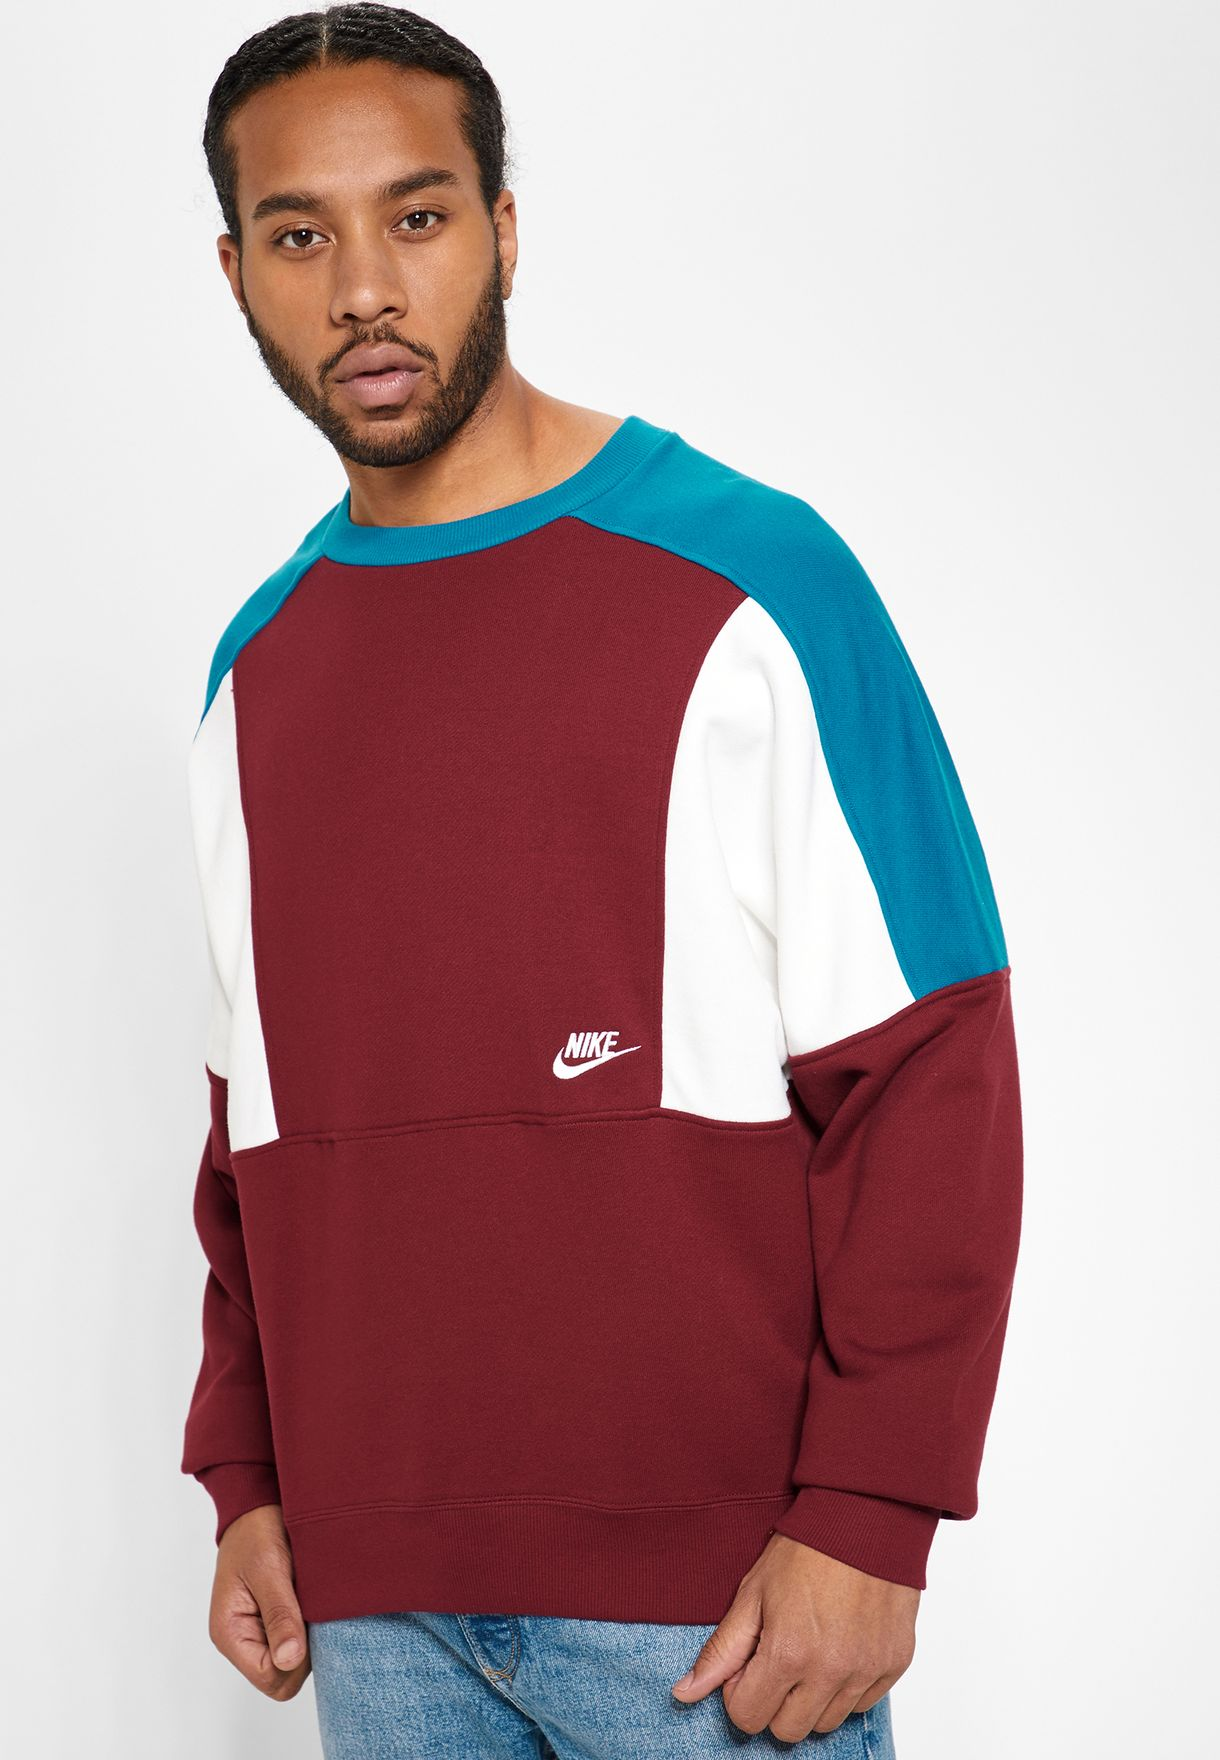 5cbf7a0185cd Shop Nike burgundy Reissue Fleece Sweatshirt AQ2061-677 for Men in UAE -  NI727AT64EQP